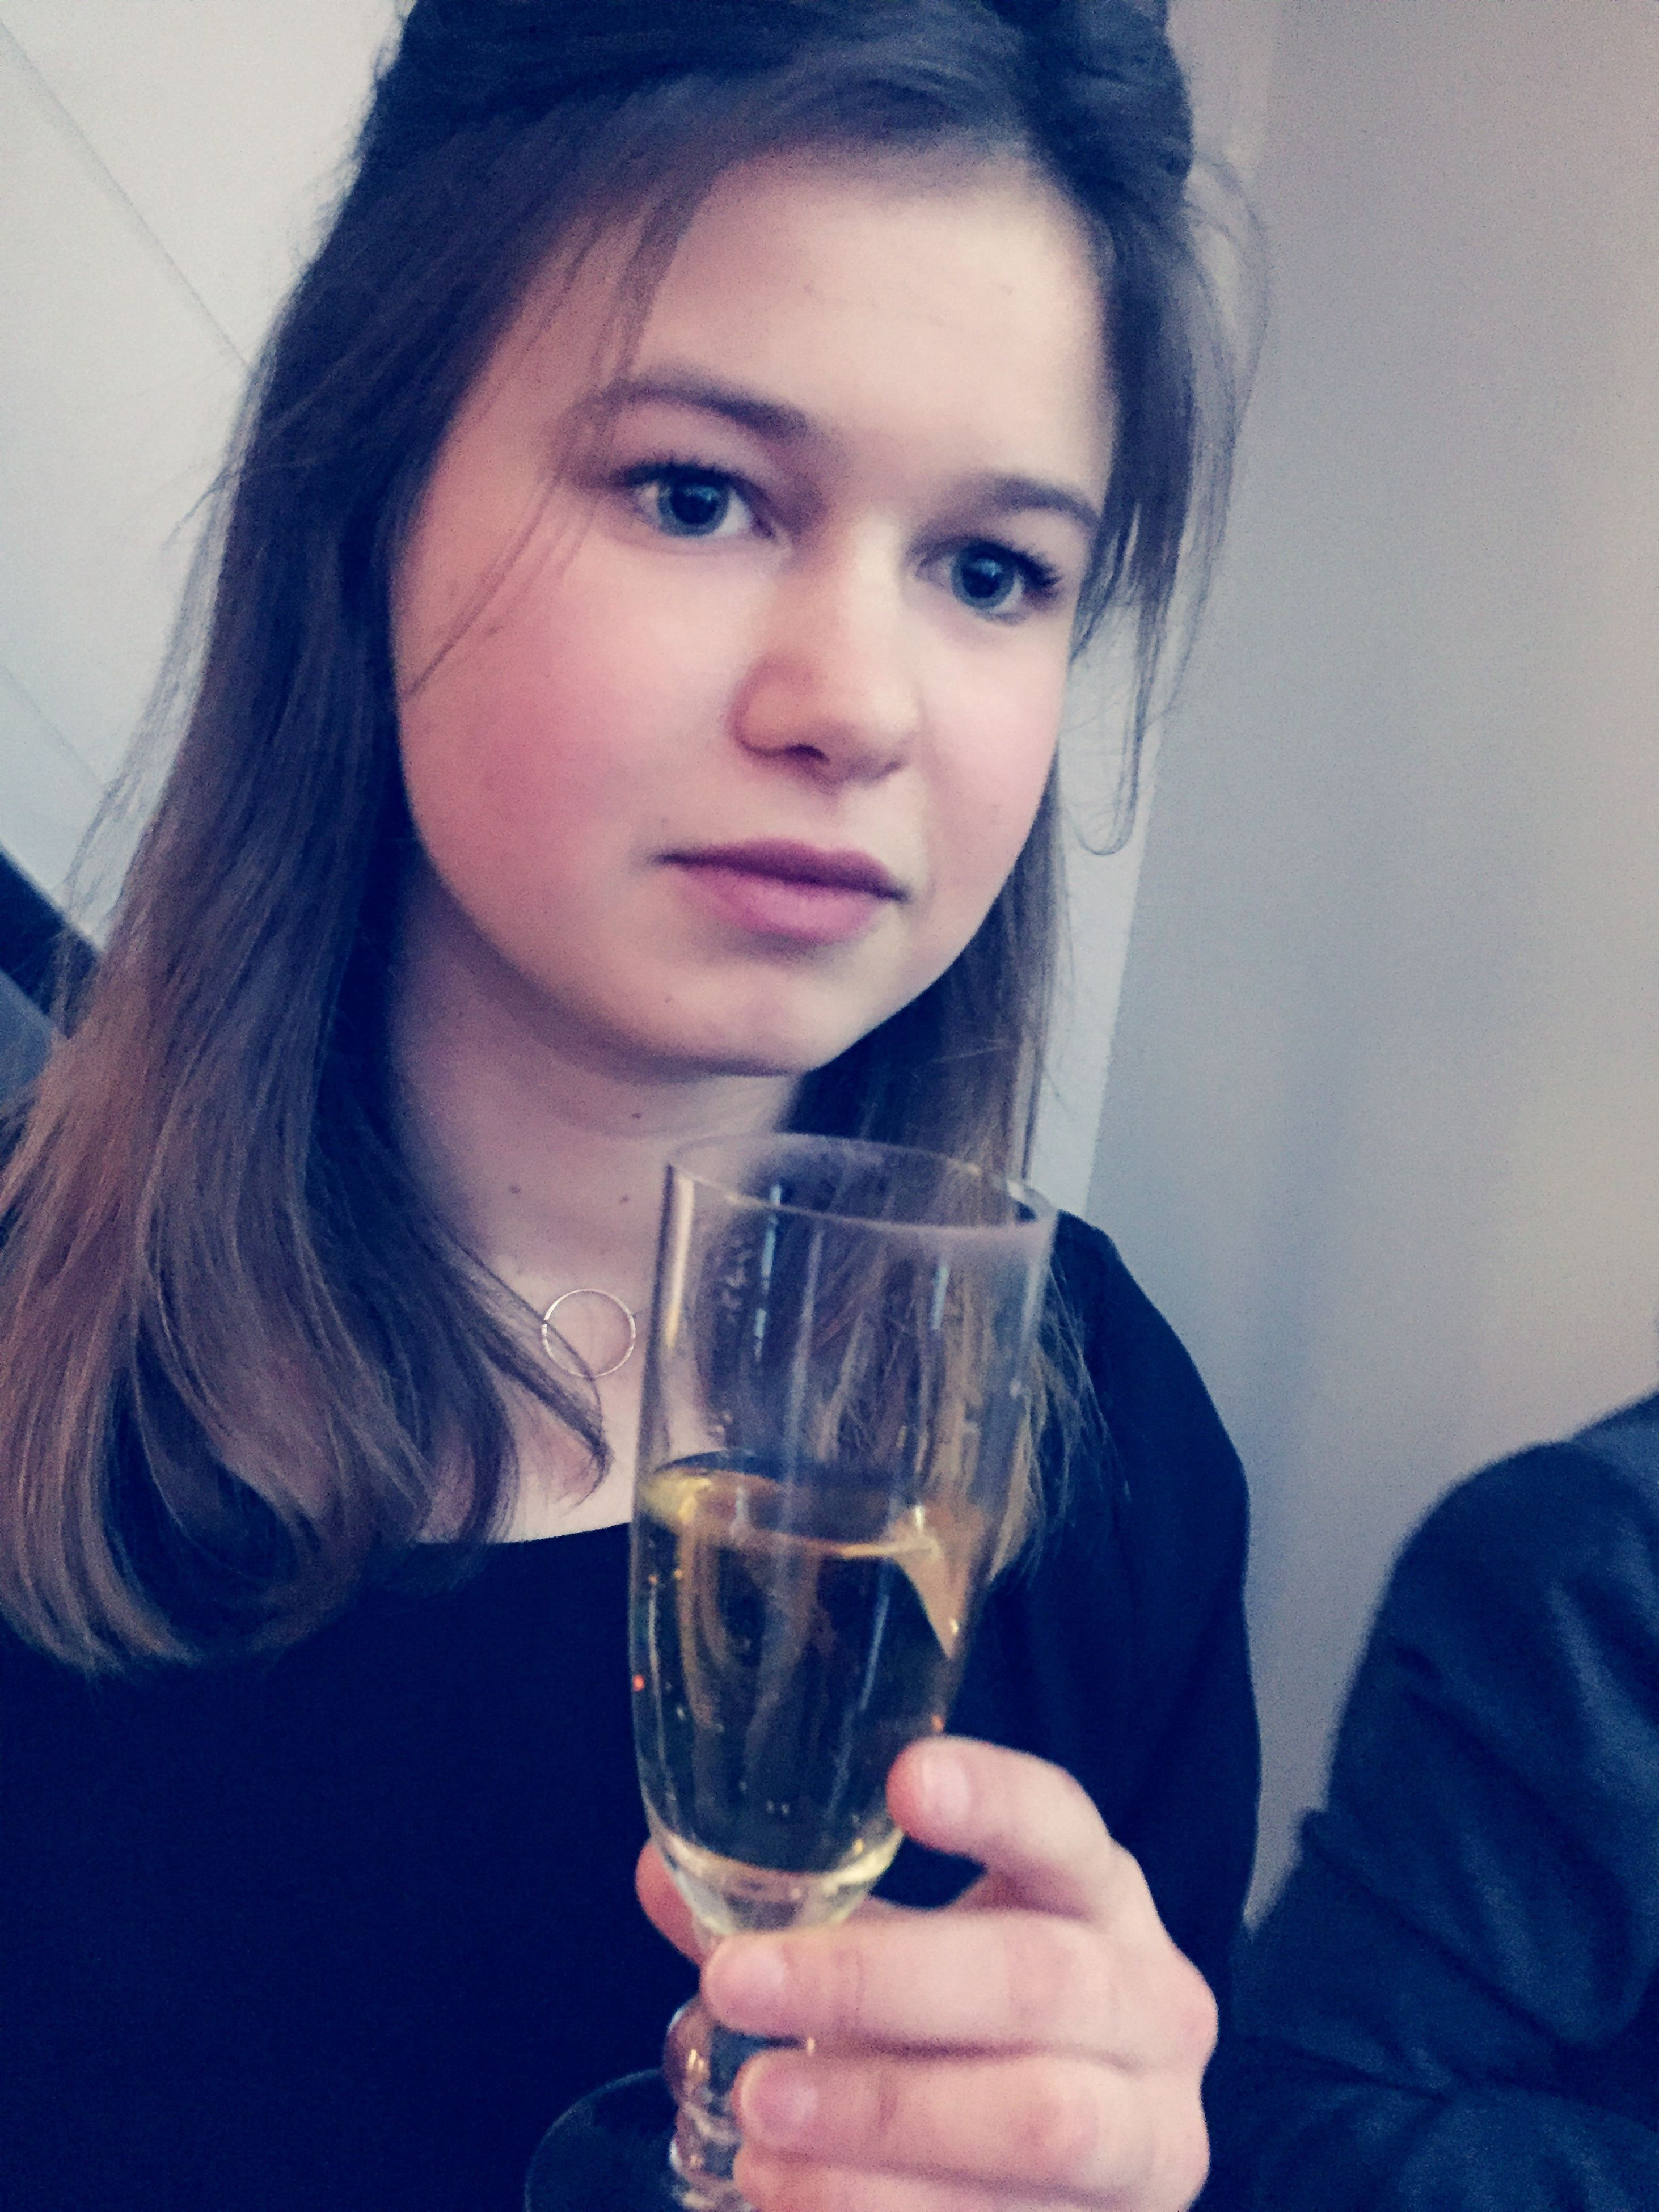 looking at camera, drink, portrait, drinking glass, holding, one person, lifestyles, young women, indoors, young adult, real people, smiling, refreshment, beautiful woman, food and drink, alcohol, close-up, one young woman only, only women, day, people, adult